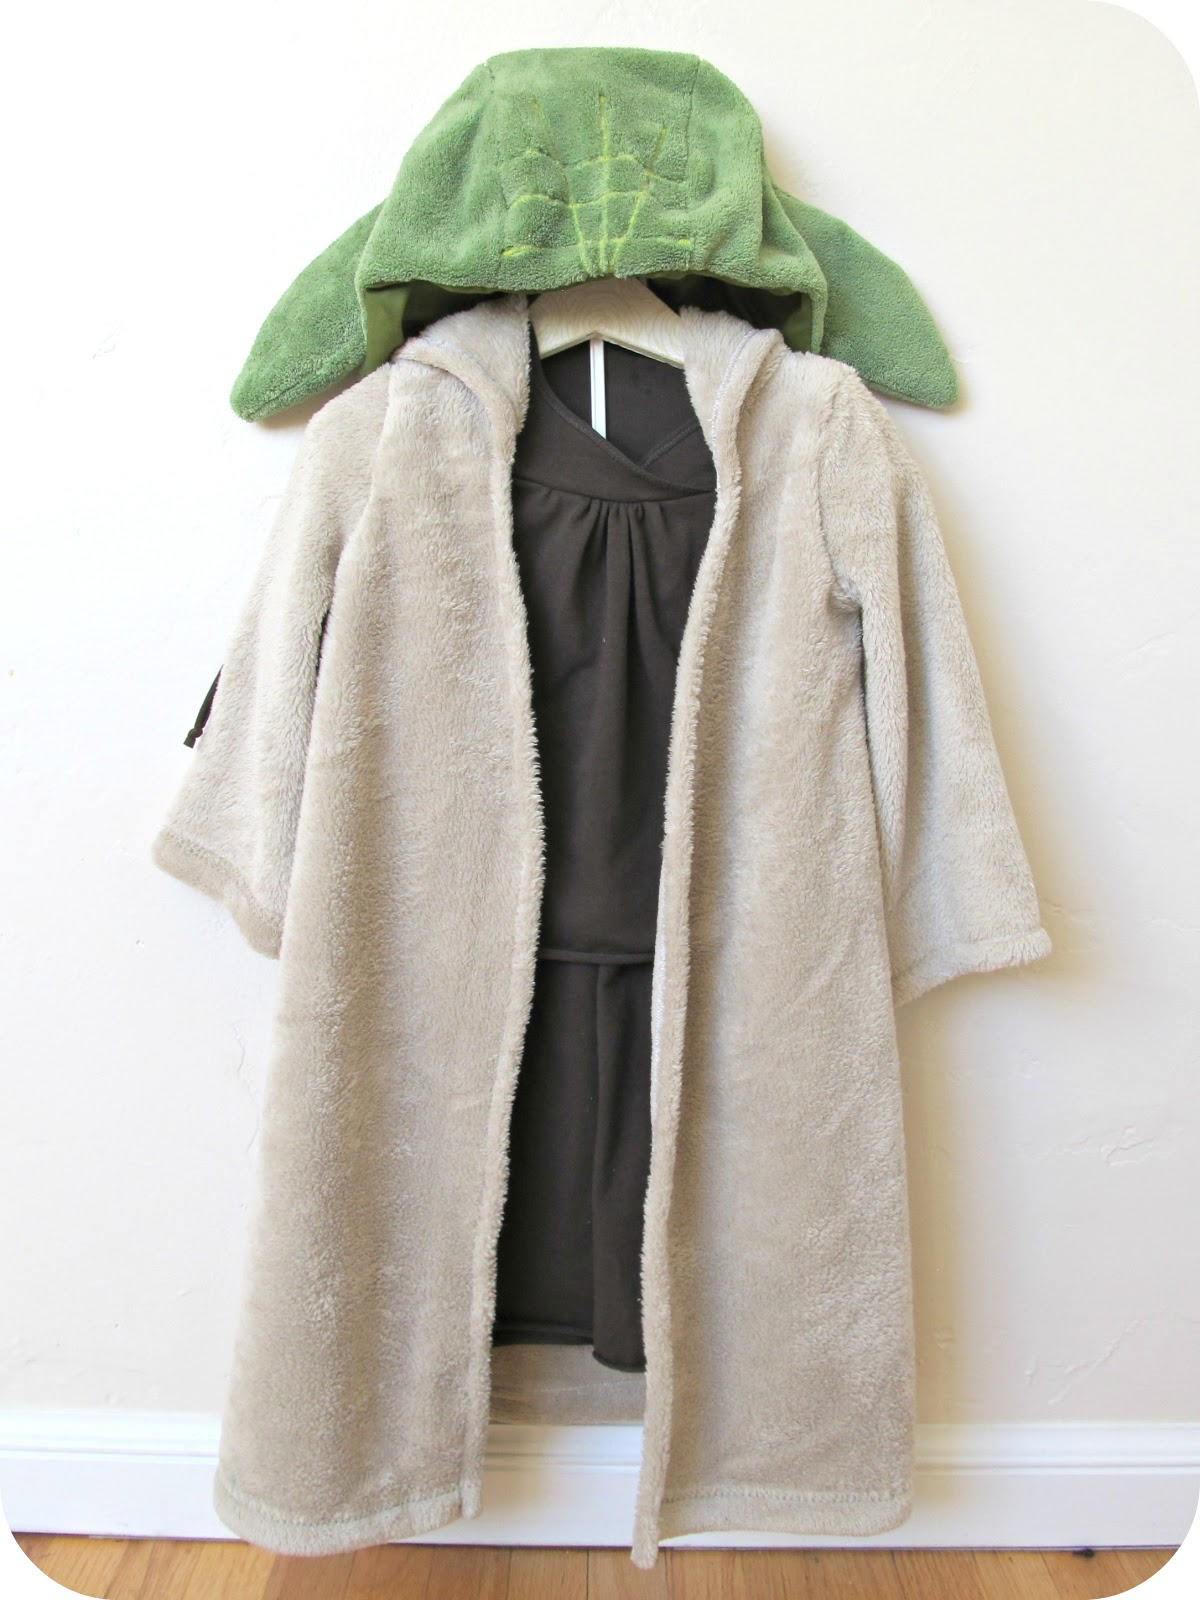 Comfy dress up yoda costume home made by jill 2013 comfy dress up yoda costume solutioingenieria Gallery